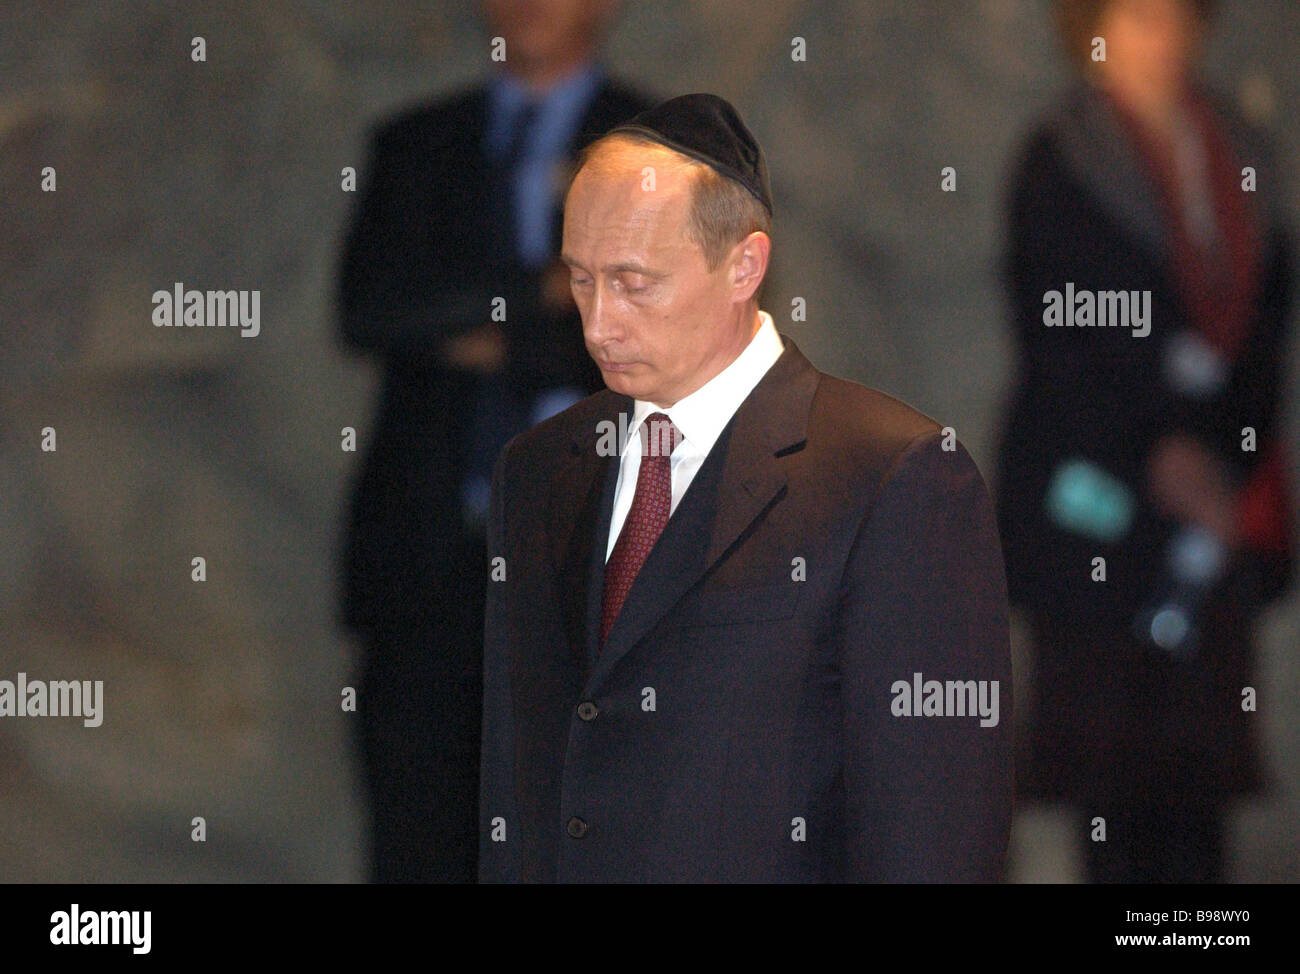 Image result for putin wearing yarmulke at wailing wall